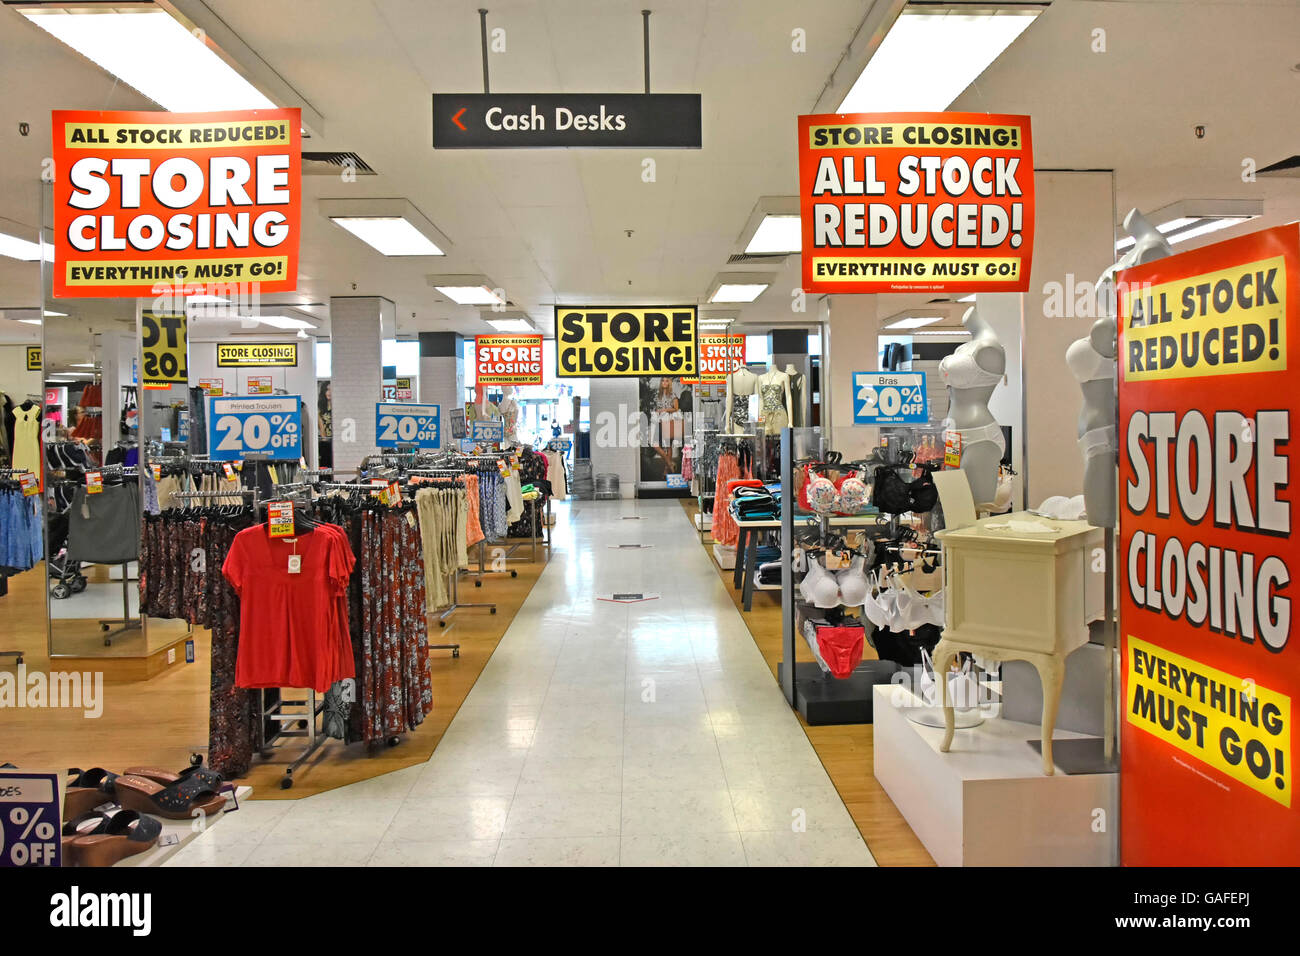 England UK interior BHS store placards for holding closing down sale prior to all UK British Home Stores shut down - Stock Image